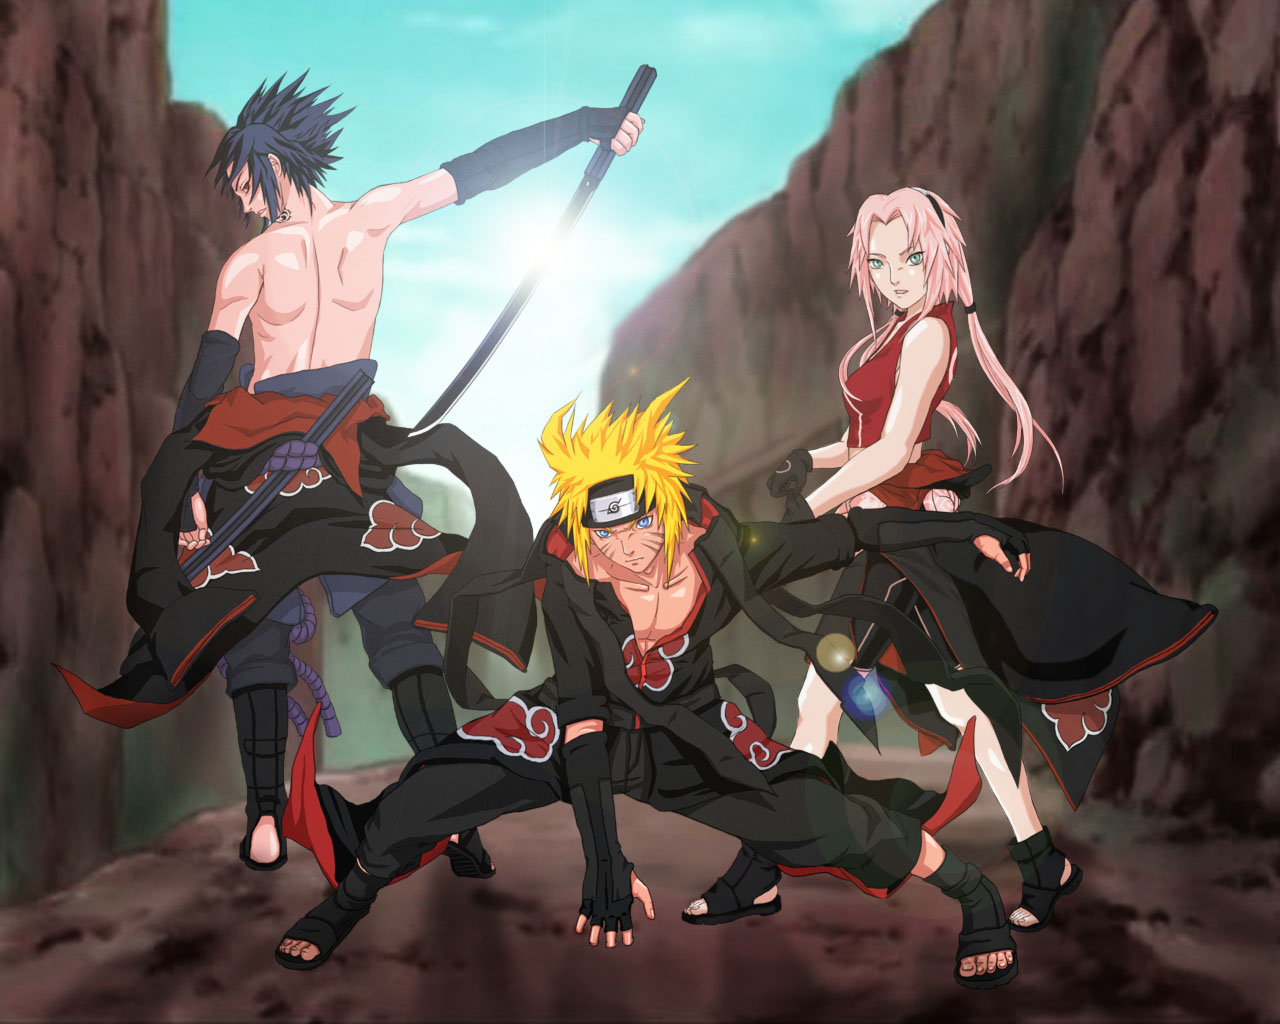 Free Naruto Shippuden Wallpapers 7 29 12 8 5 12